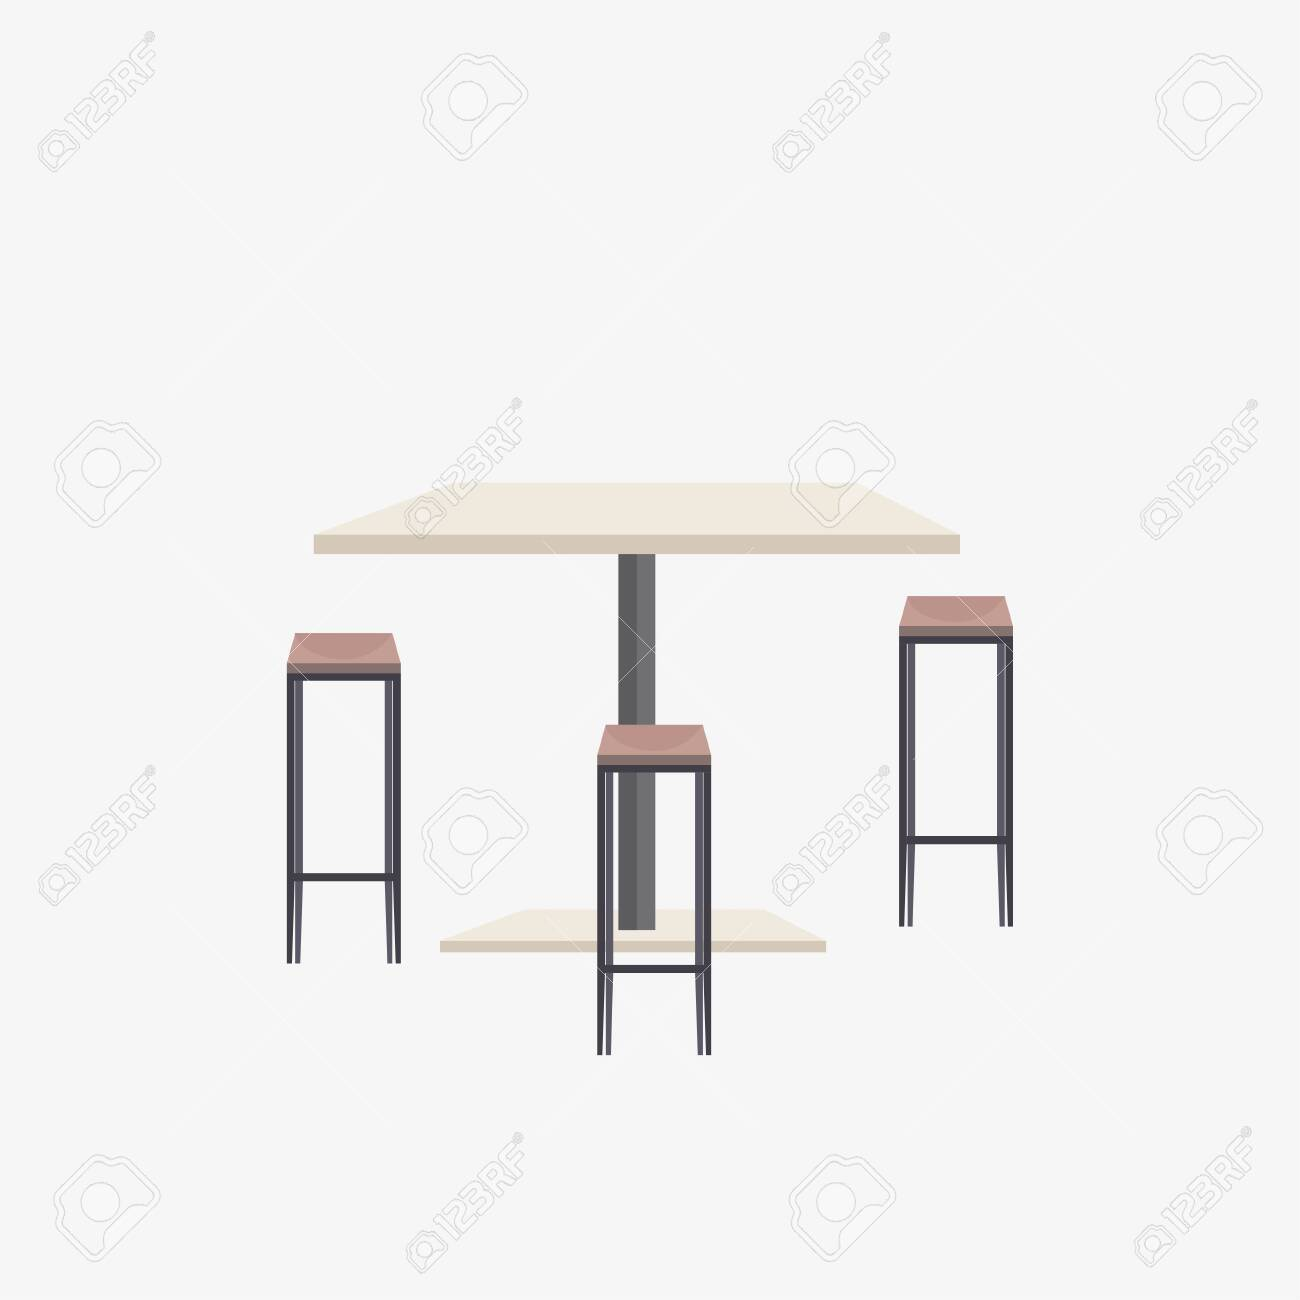 empty no people cafe table with chairs modern restaurant cafeteria..